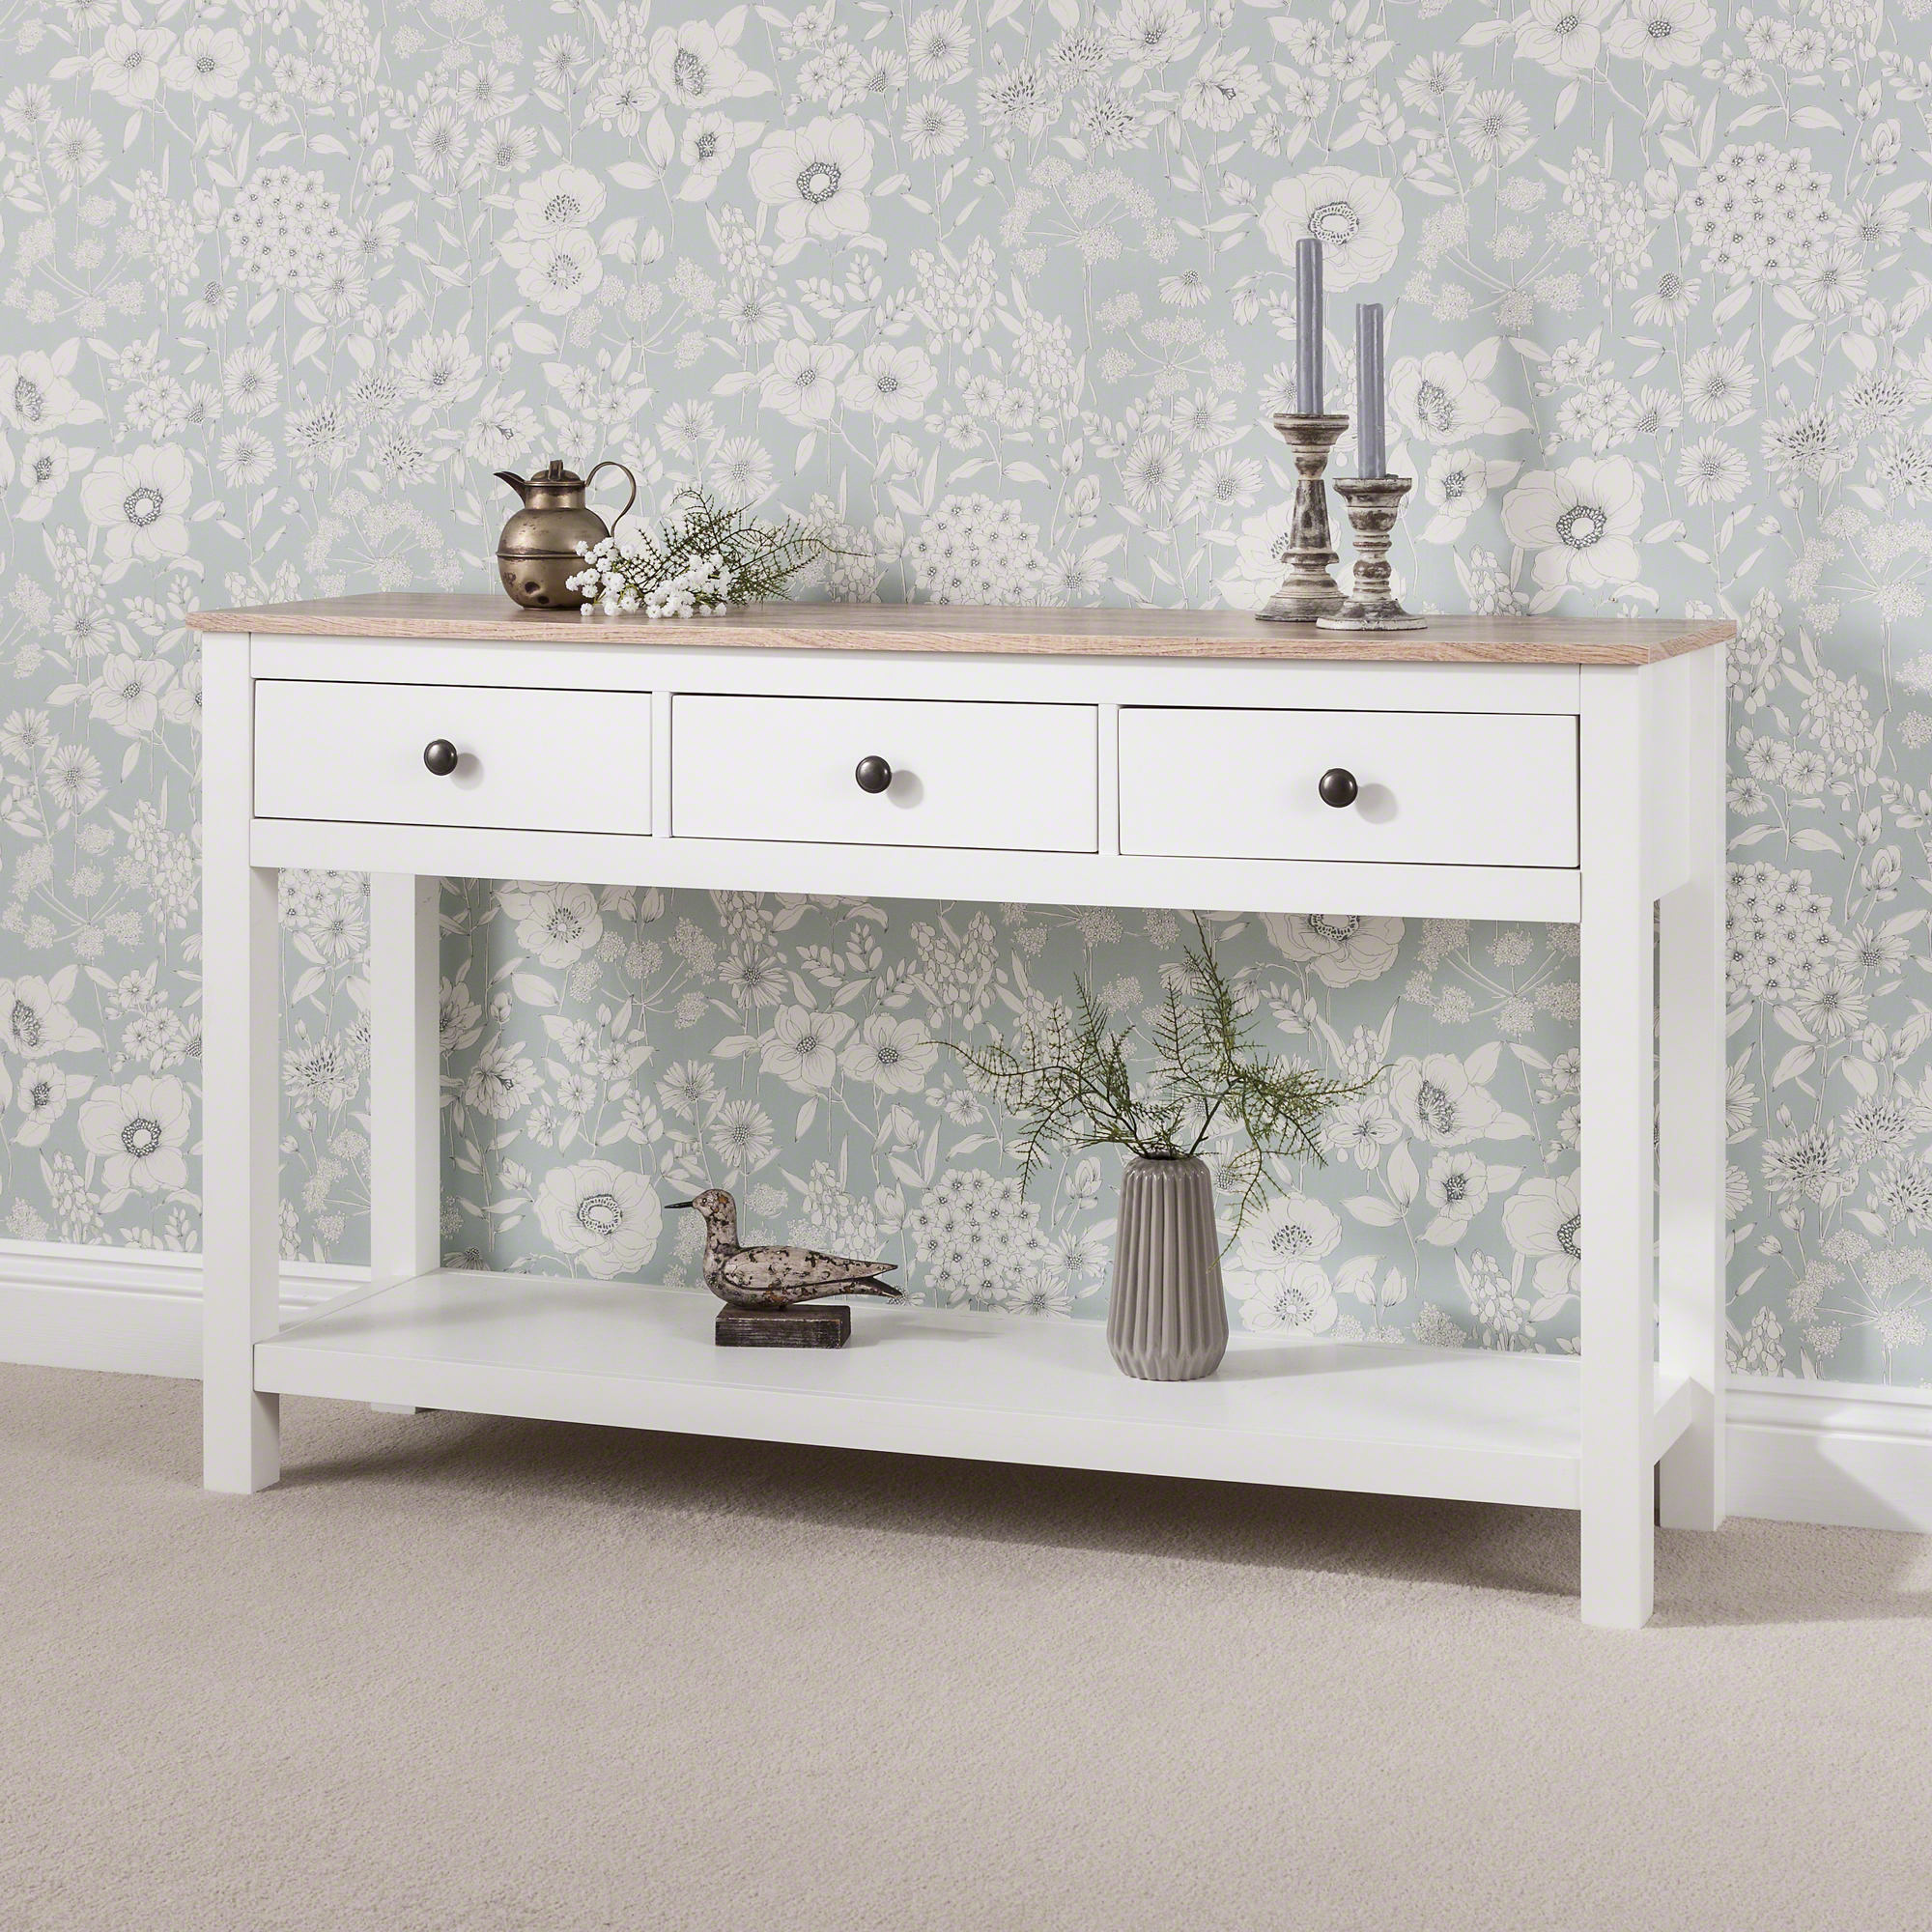 Details About Laura James White Console Table With 2 U0026 3 Drawers And Shelf